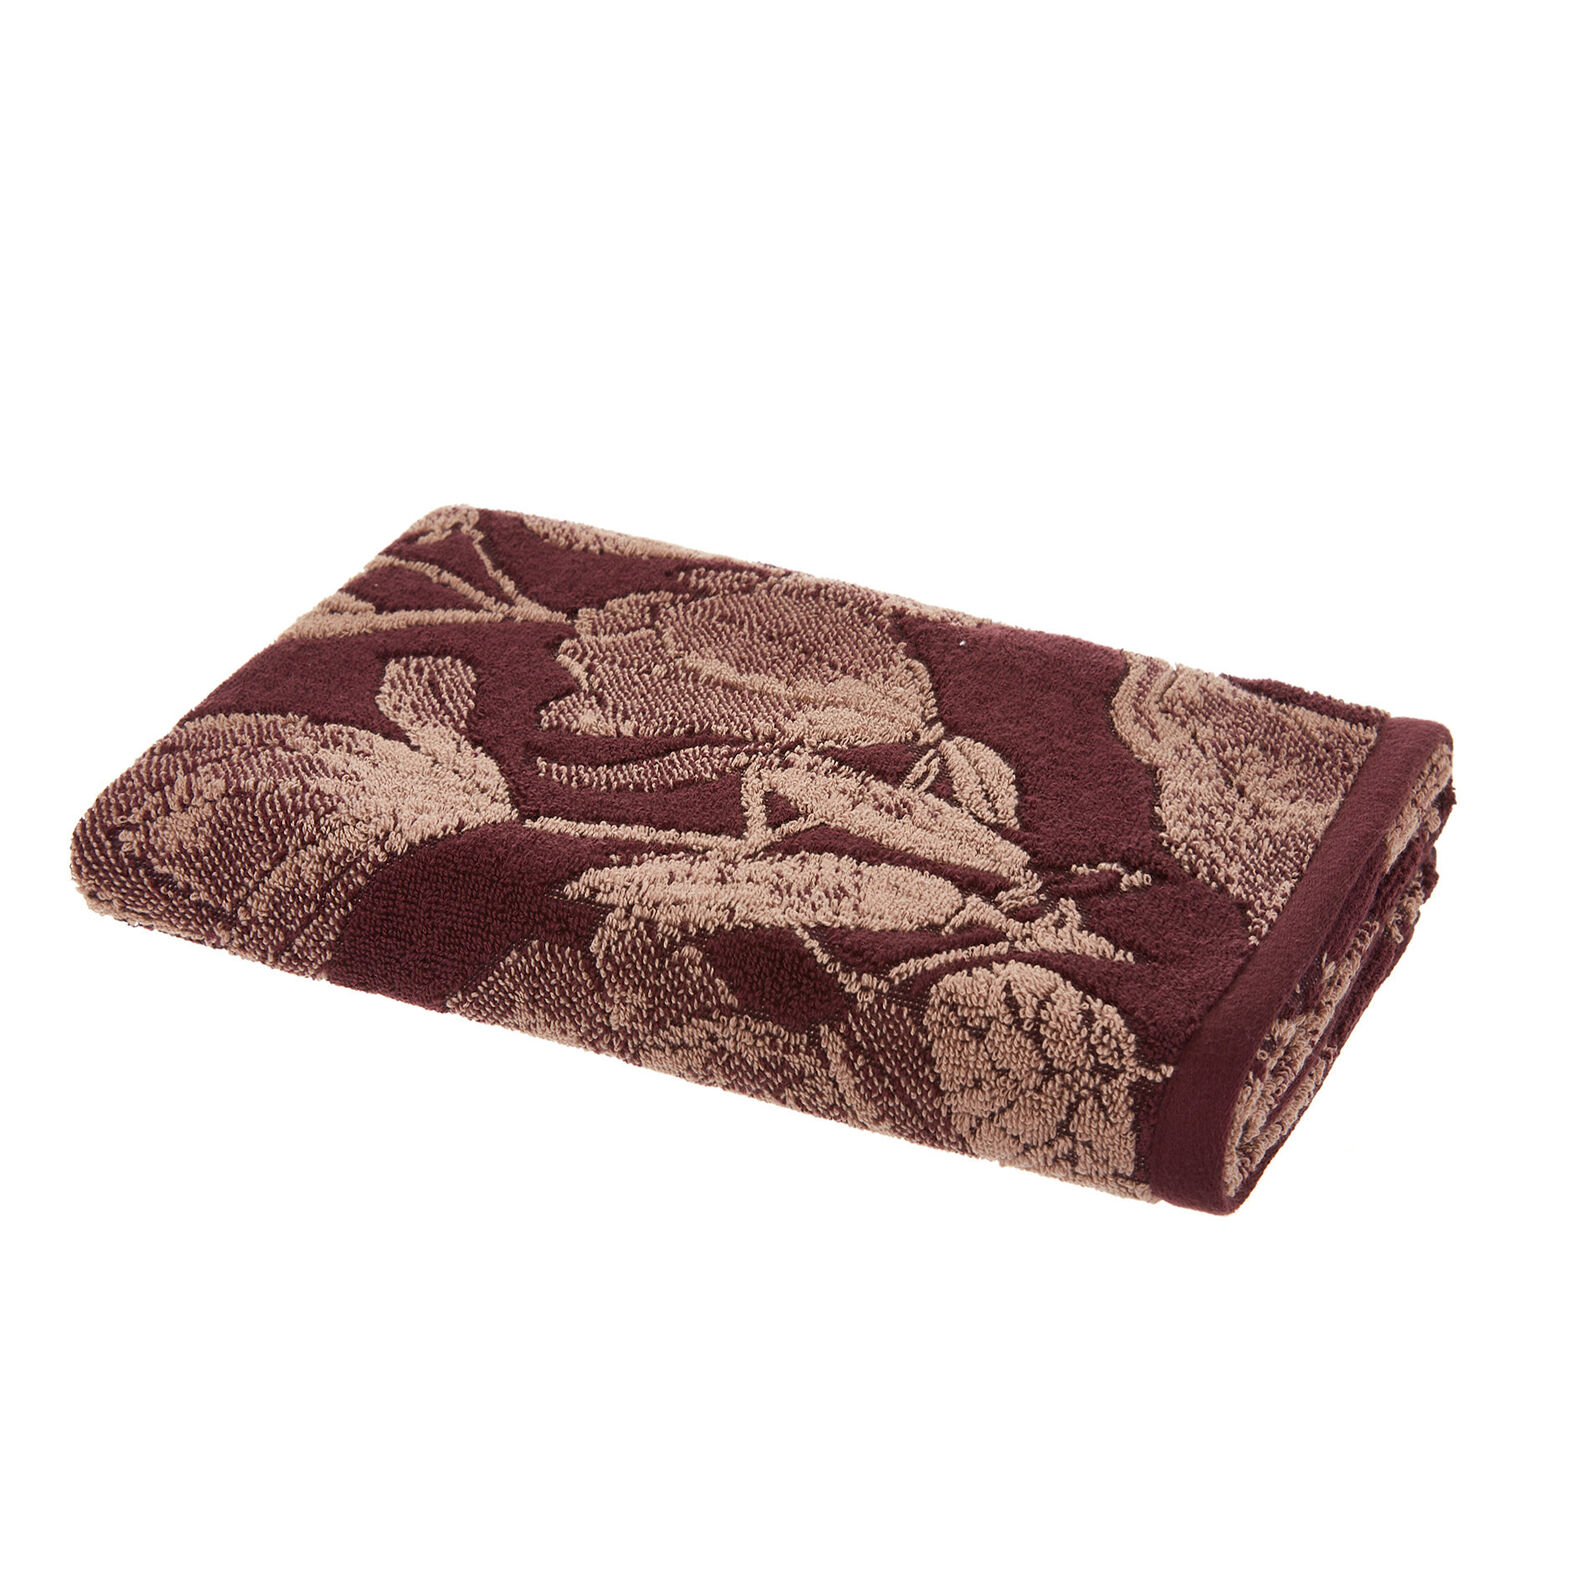 Cotton terry towel with magnolia design